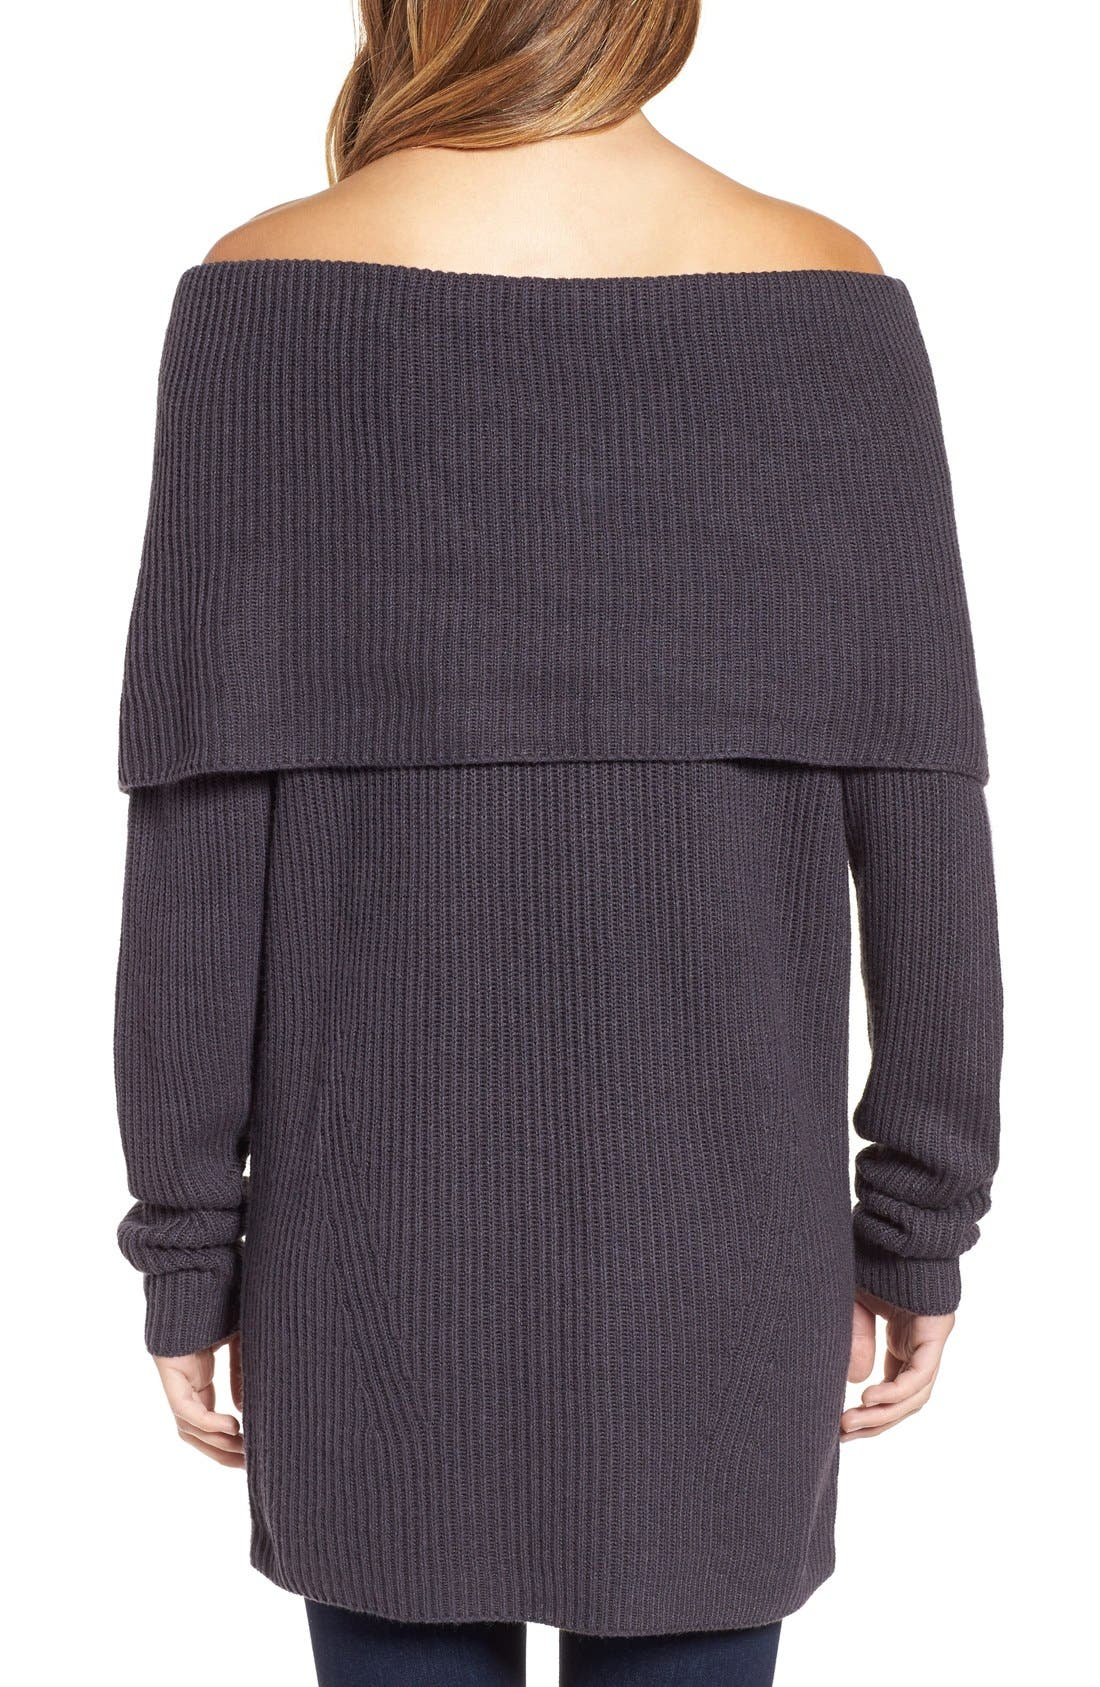 LEITH, Off the Shoulder Knit Sweater, Alternate thumbnail 5, color, 021